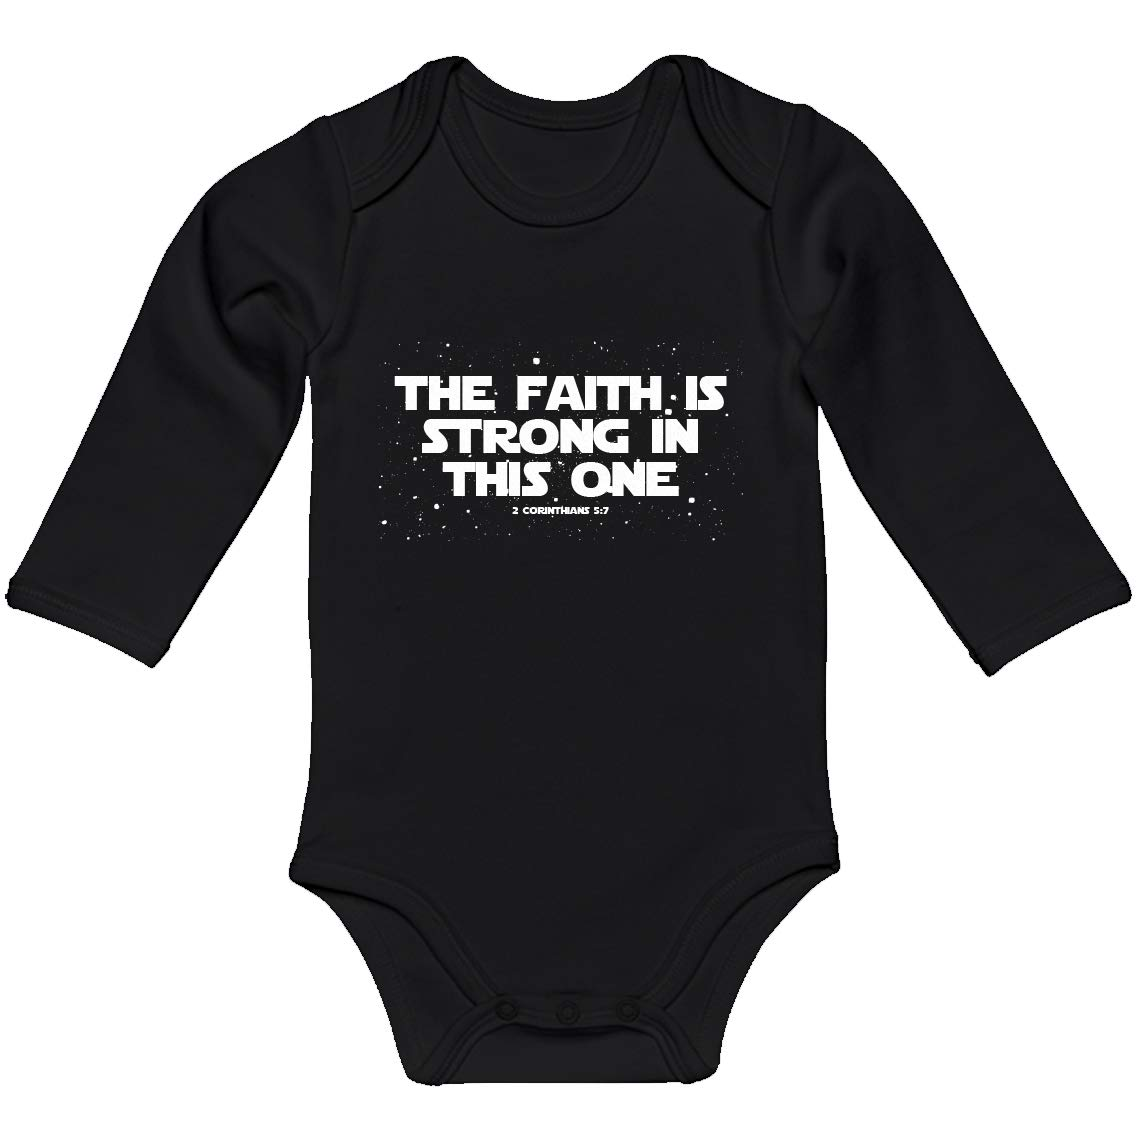 Baby Onesie The Faith is Strong in This One 100/% Cotton Long Sleeve Infant Bodysuit